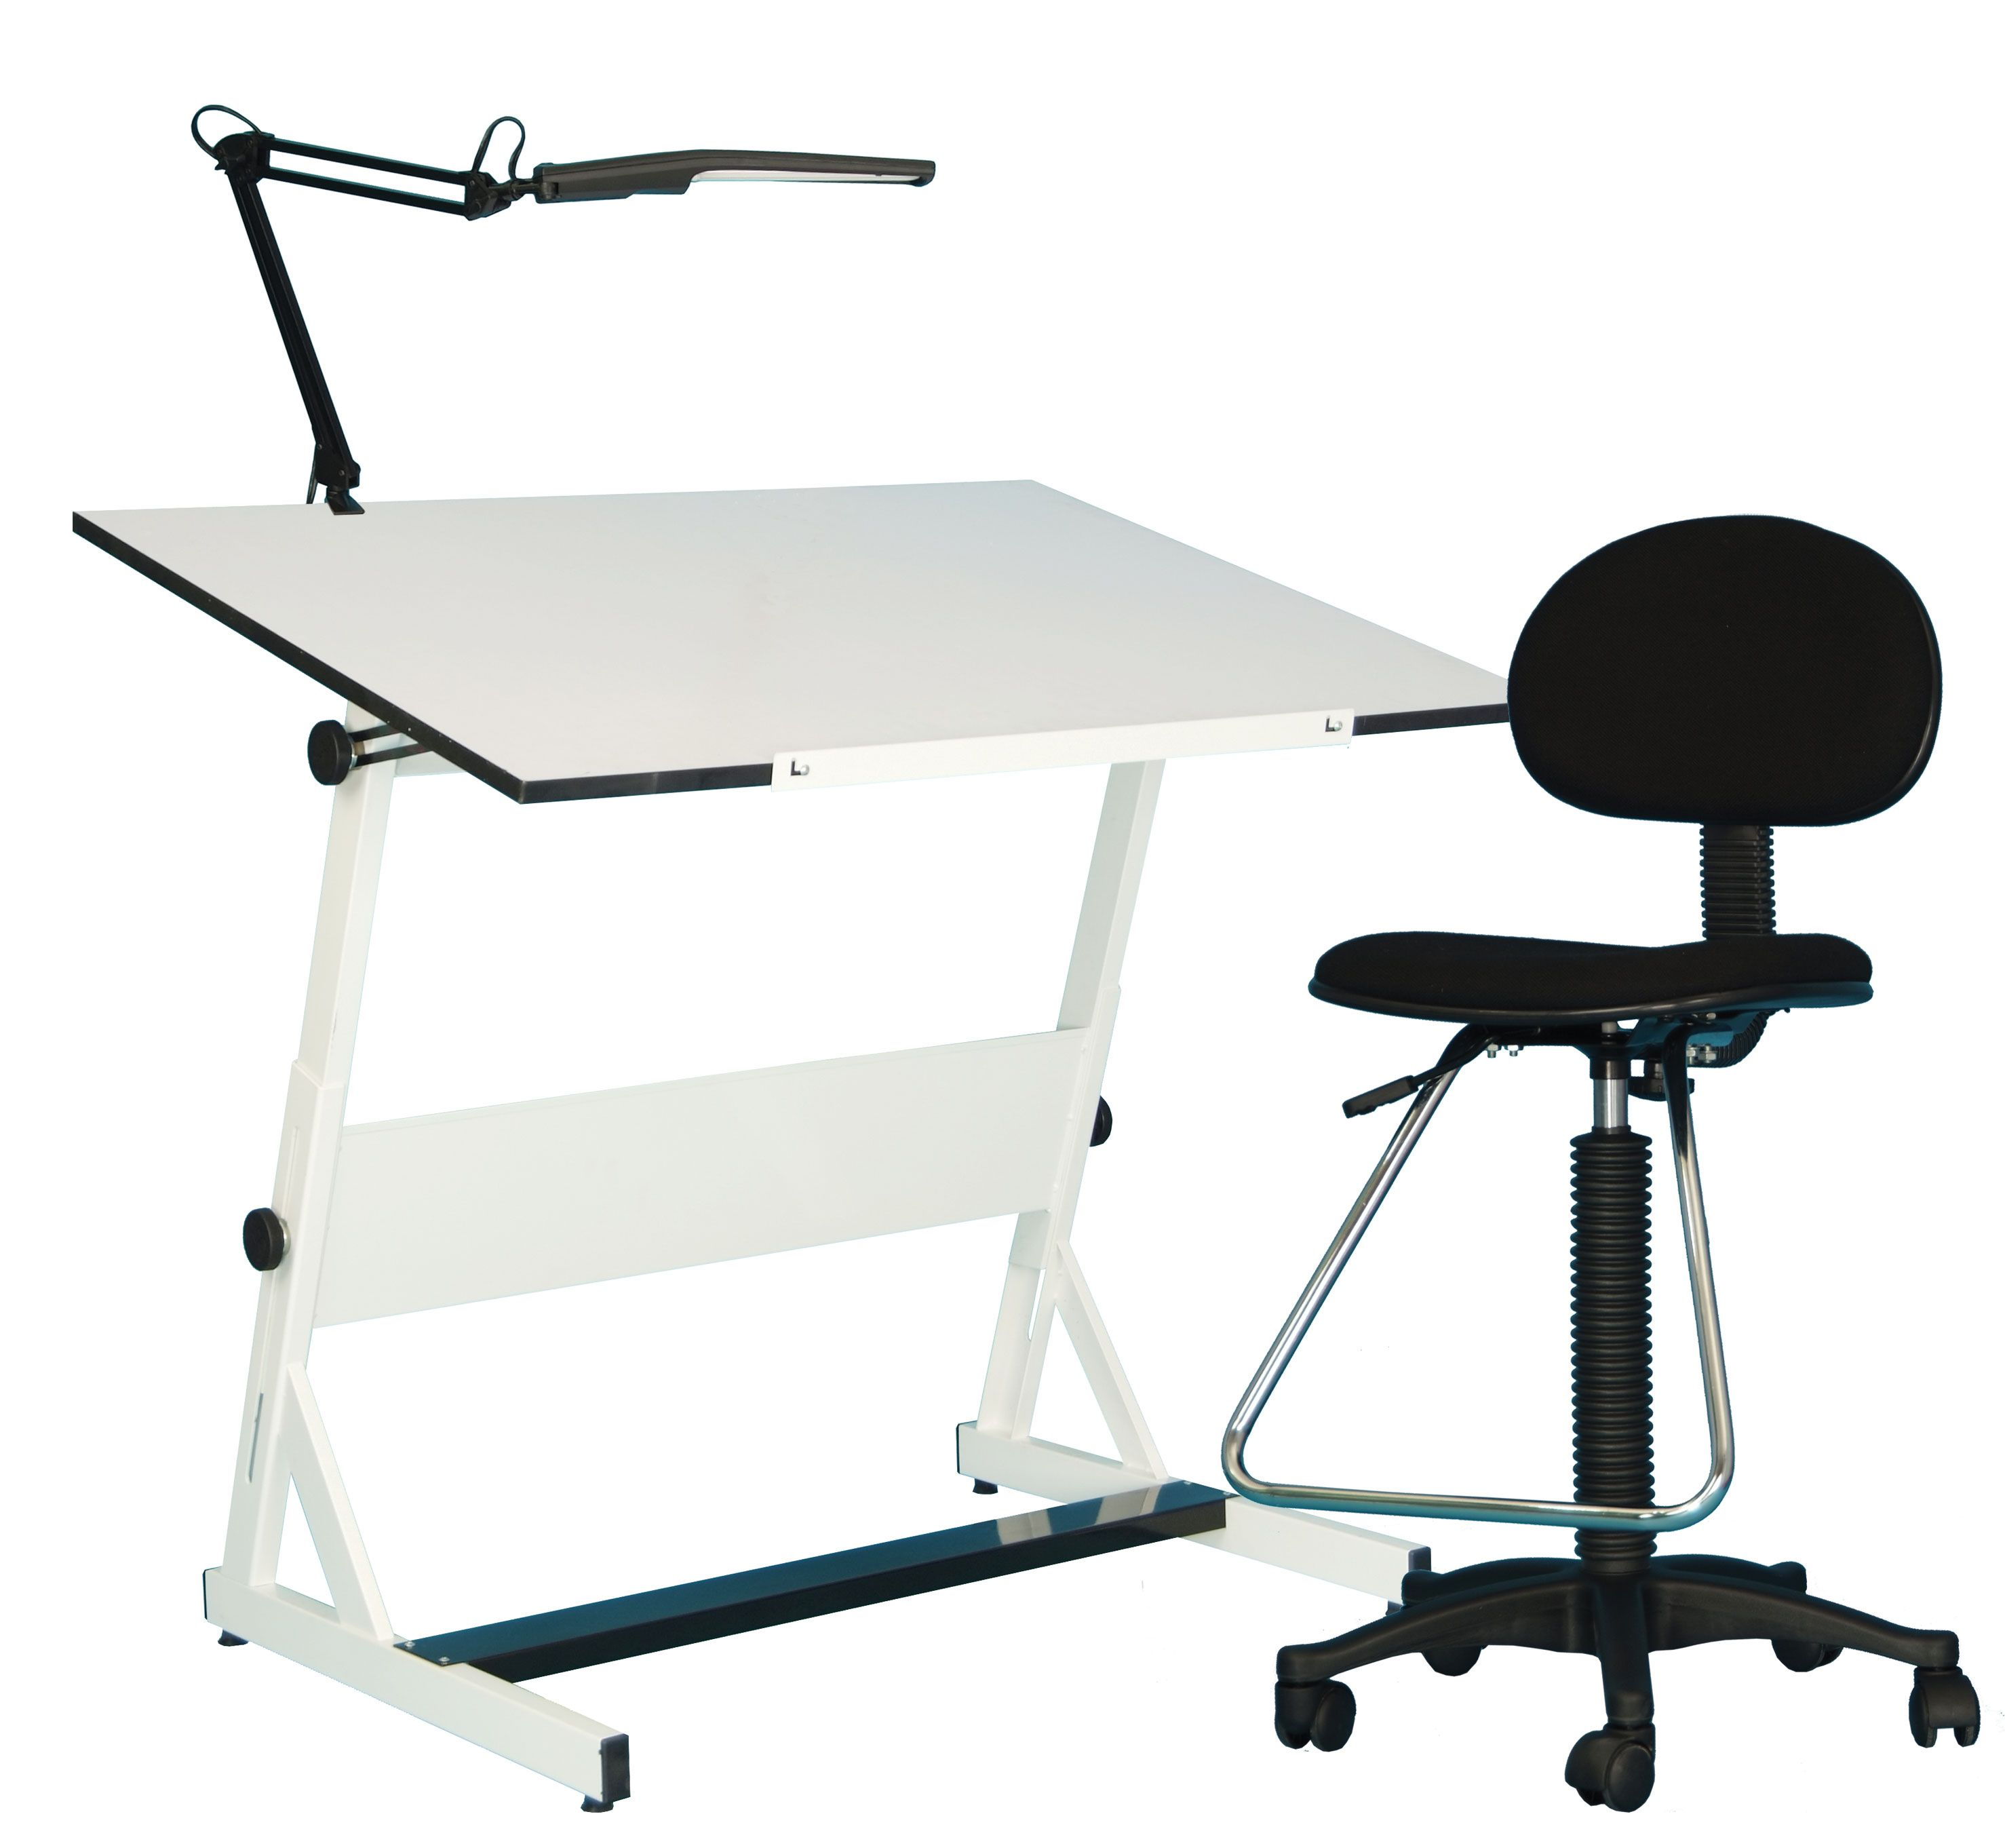 Charming Save On Discount Utrecht 3 Piece Contemporary Drafting Table Set With  Chair, Lamp U0026 More